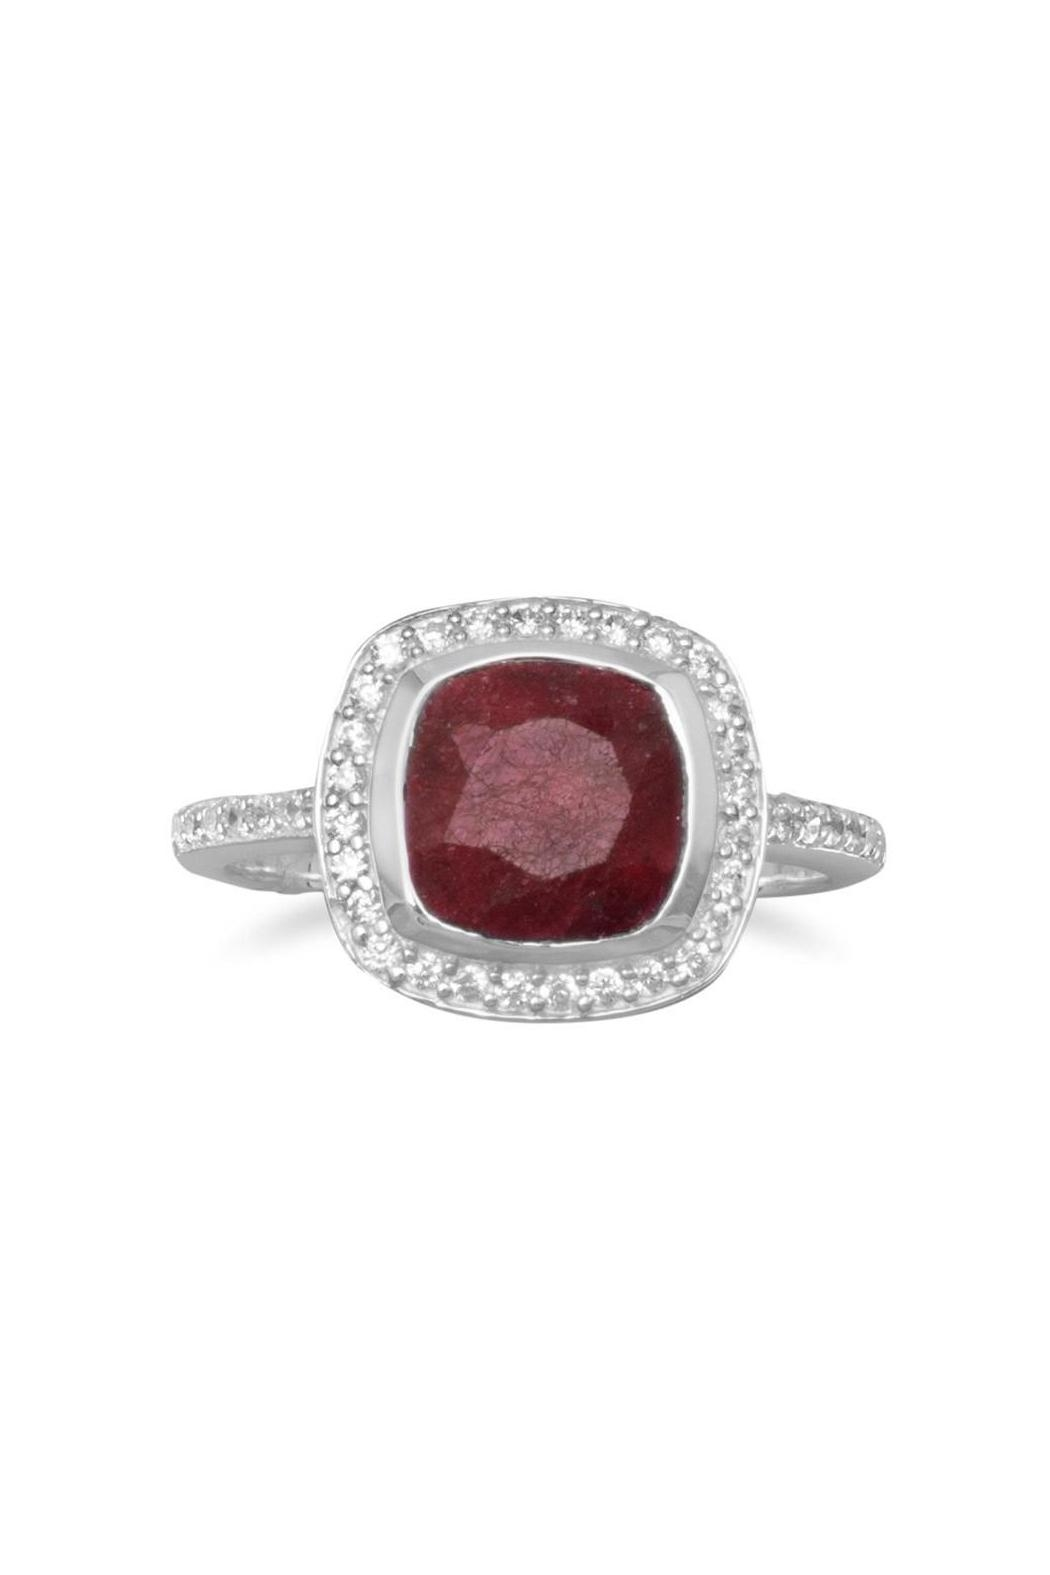 Wild Lilies Jewelry  Red Corundum Ring - Main Image